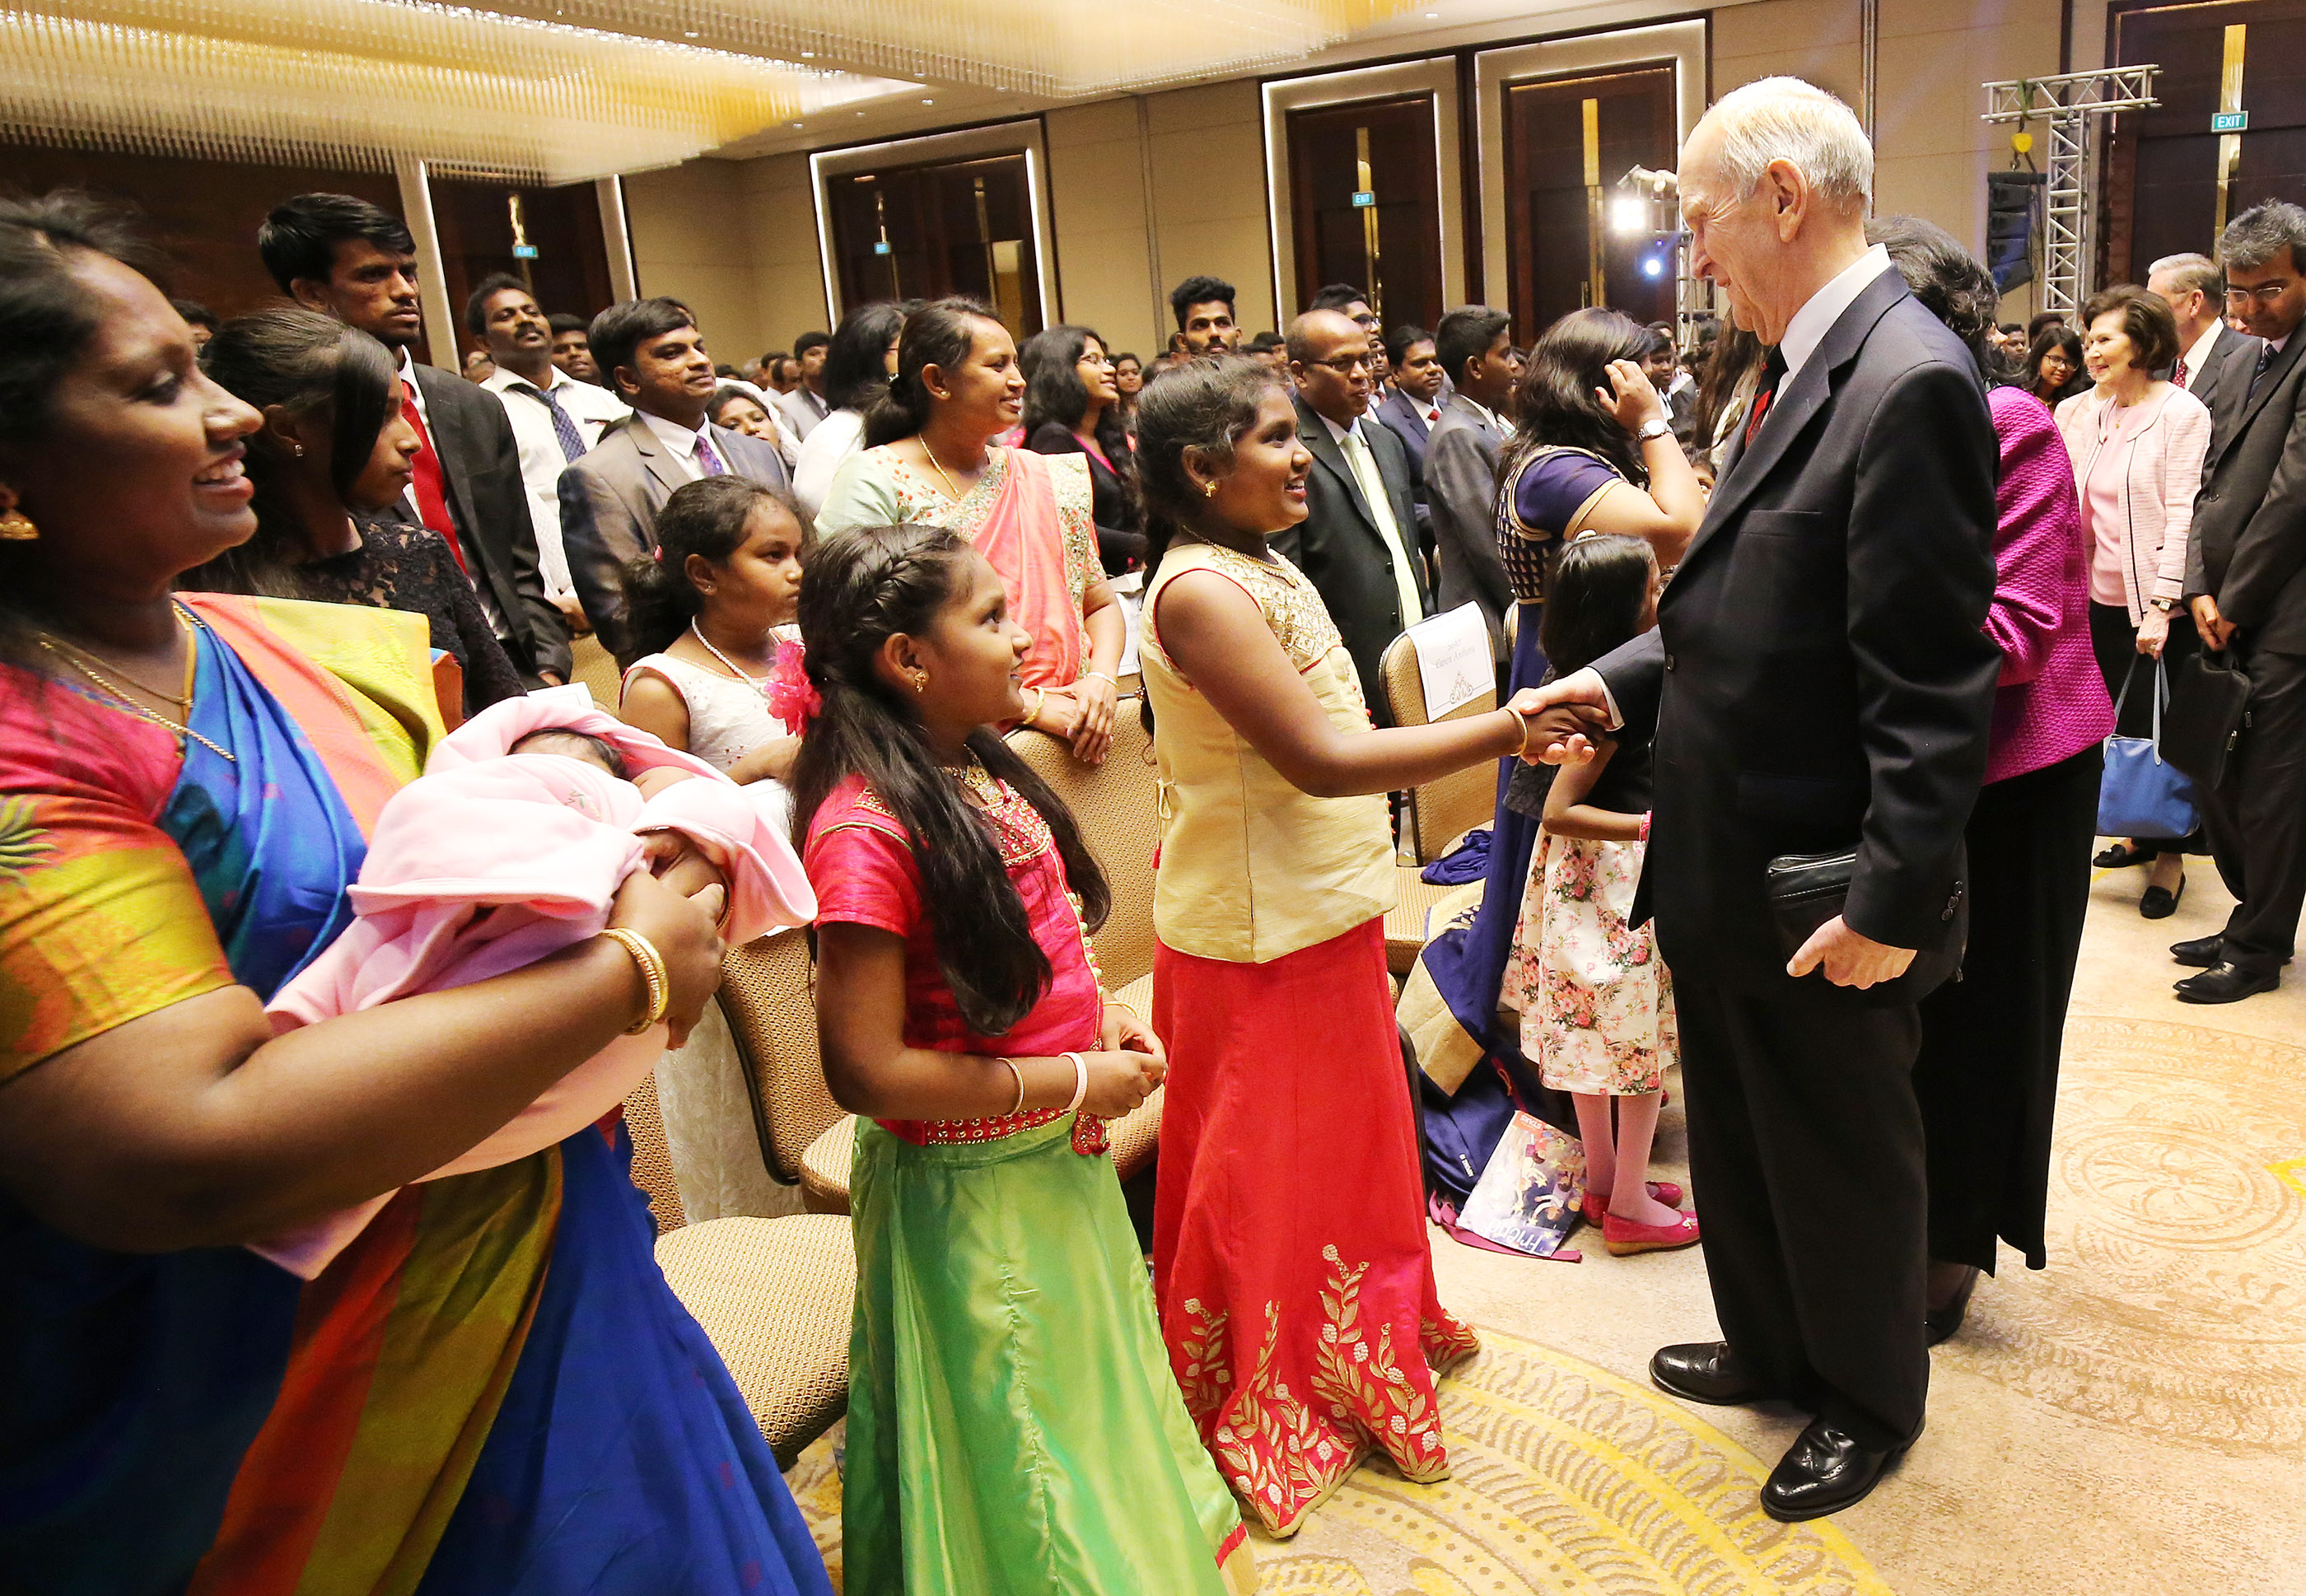 President Russell M. Nelson greets Nadine Sunderraj, Nathalee Sunderraj and their mother, Stella Sunderraj, after the devotional in Bengaluru, India, on Thursday, April 19, 2018.